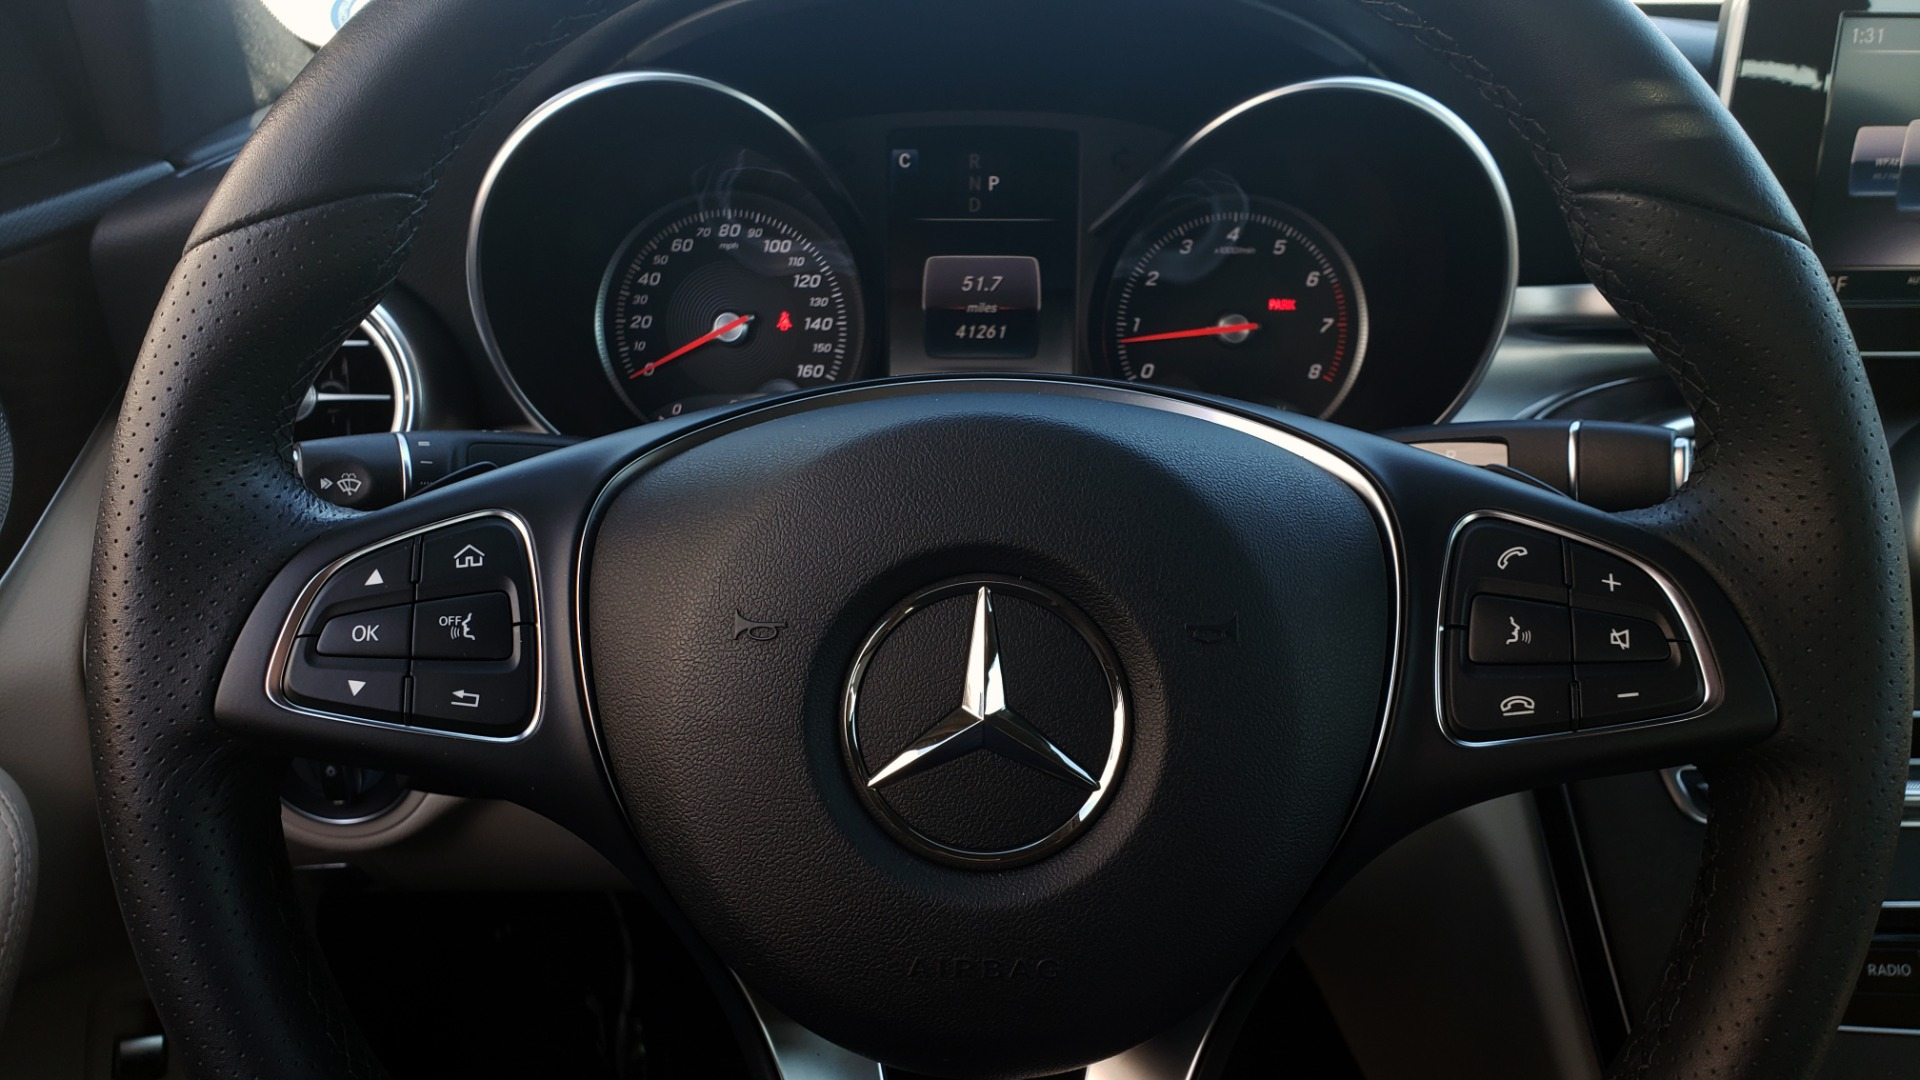 Used 2018 Mercedes-Benz C-CLASS C 300 PREMIUM / SUNROOF / BURMESTER / BSM / REARVIEW for sale $23,995 at Formula Imports in Charlotte NC 28227 33